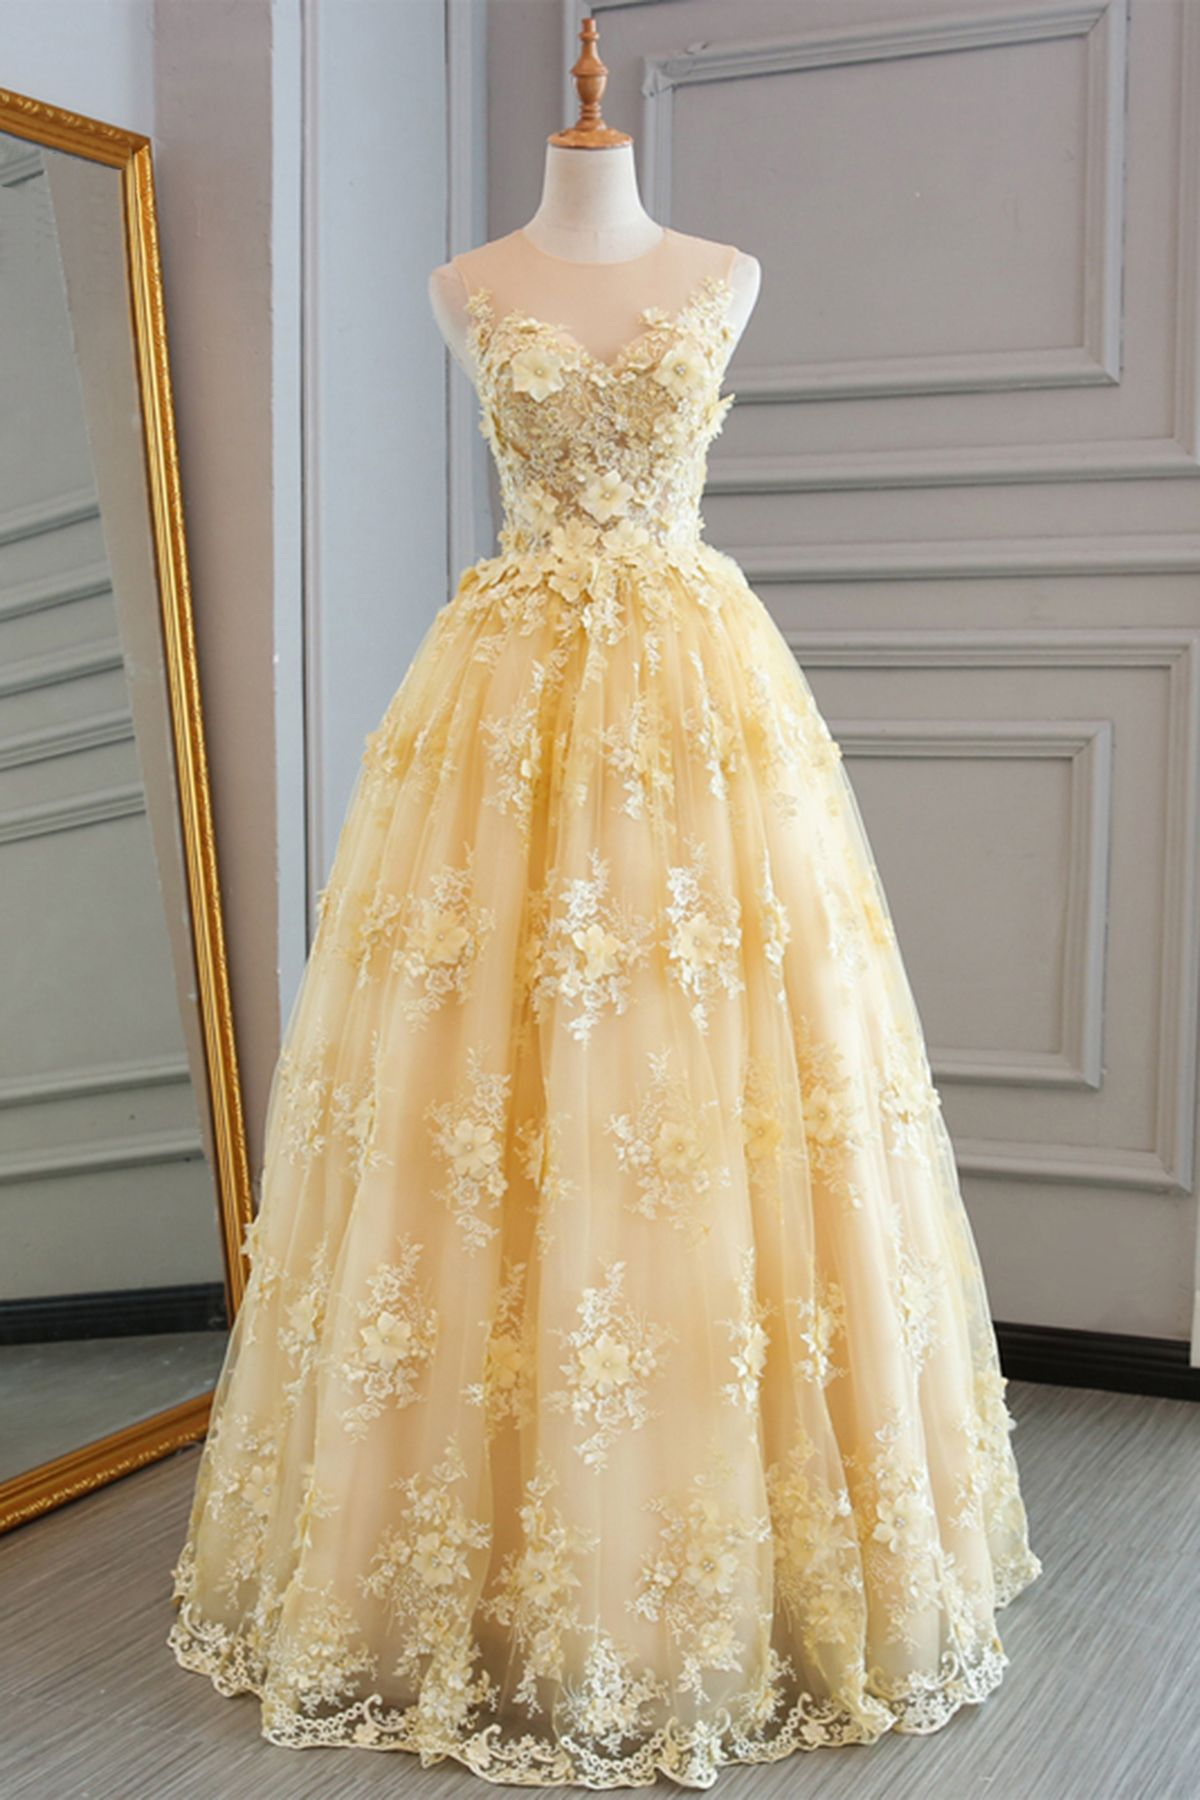 Yellow prom dresseslace prom dressescustomize prom dresslong prom